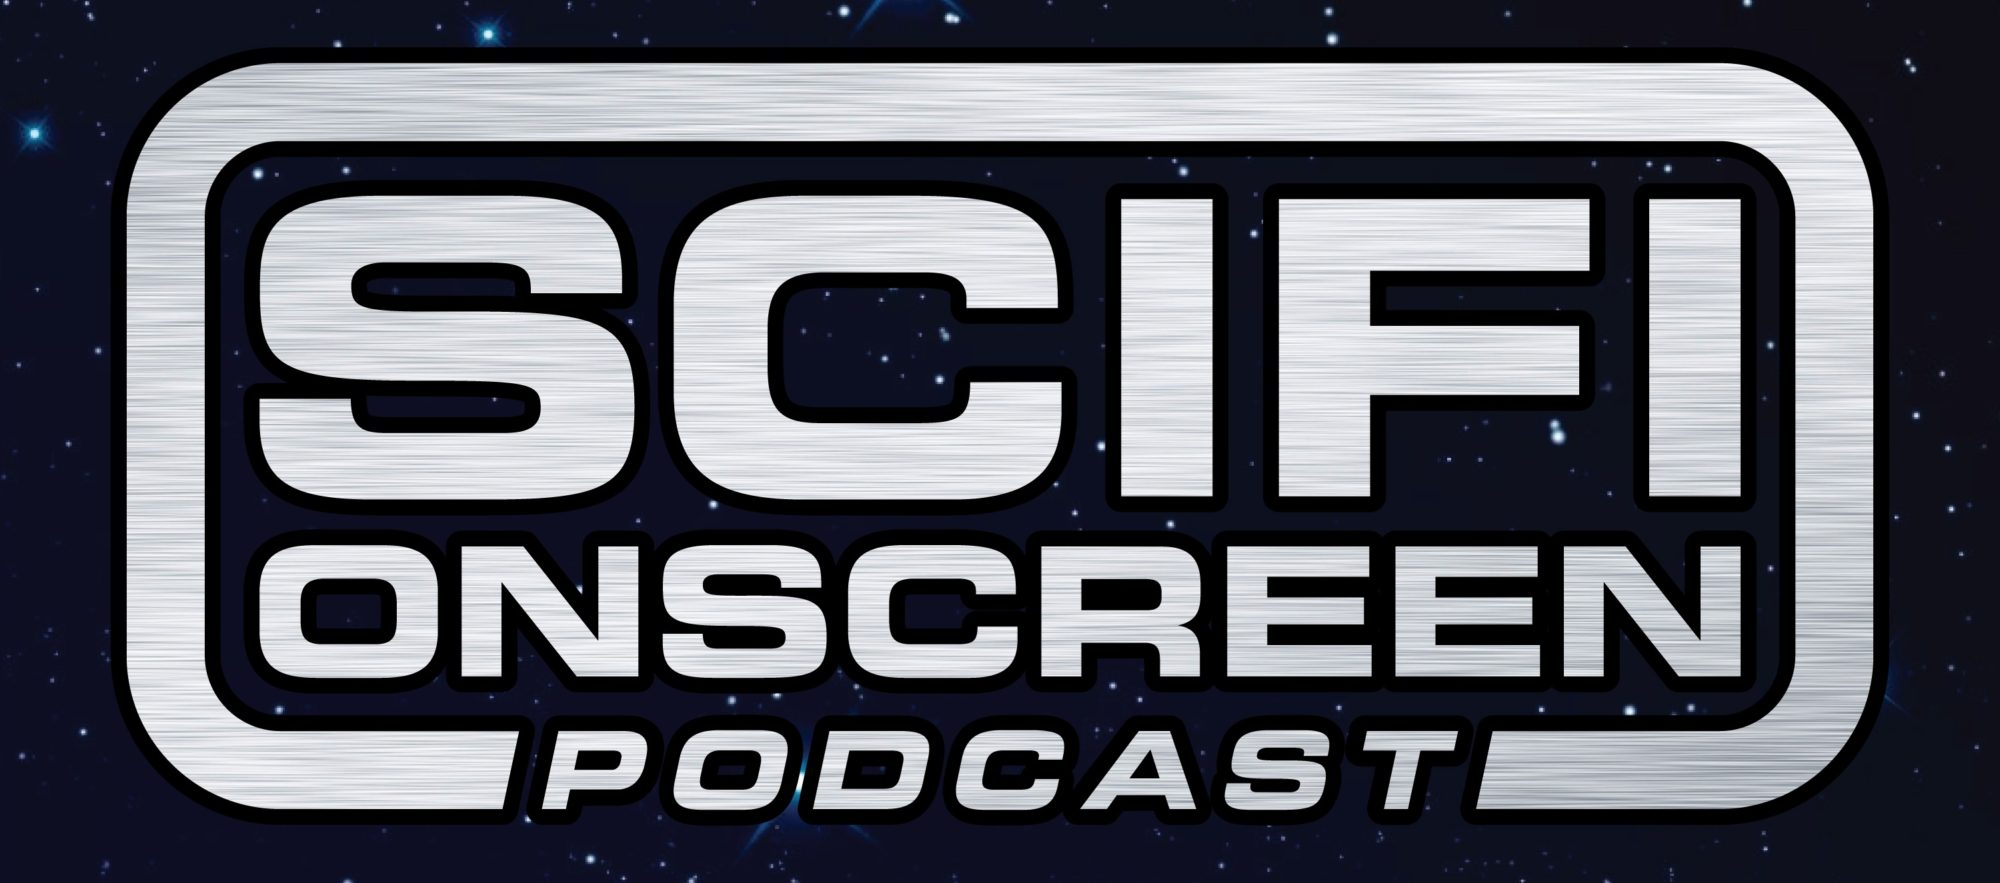 SciFi Onscreen Podcast